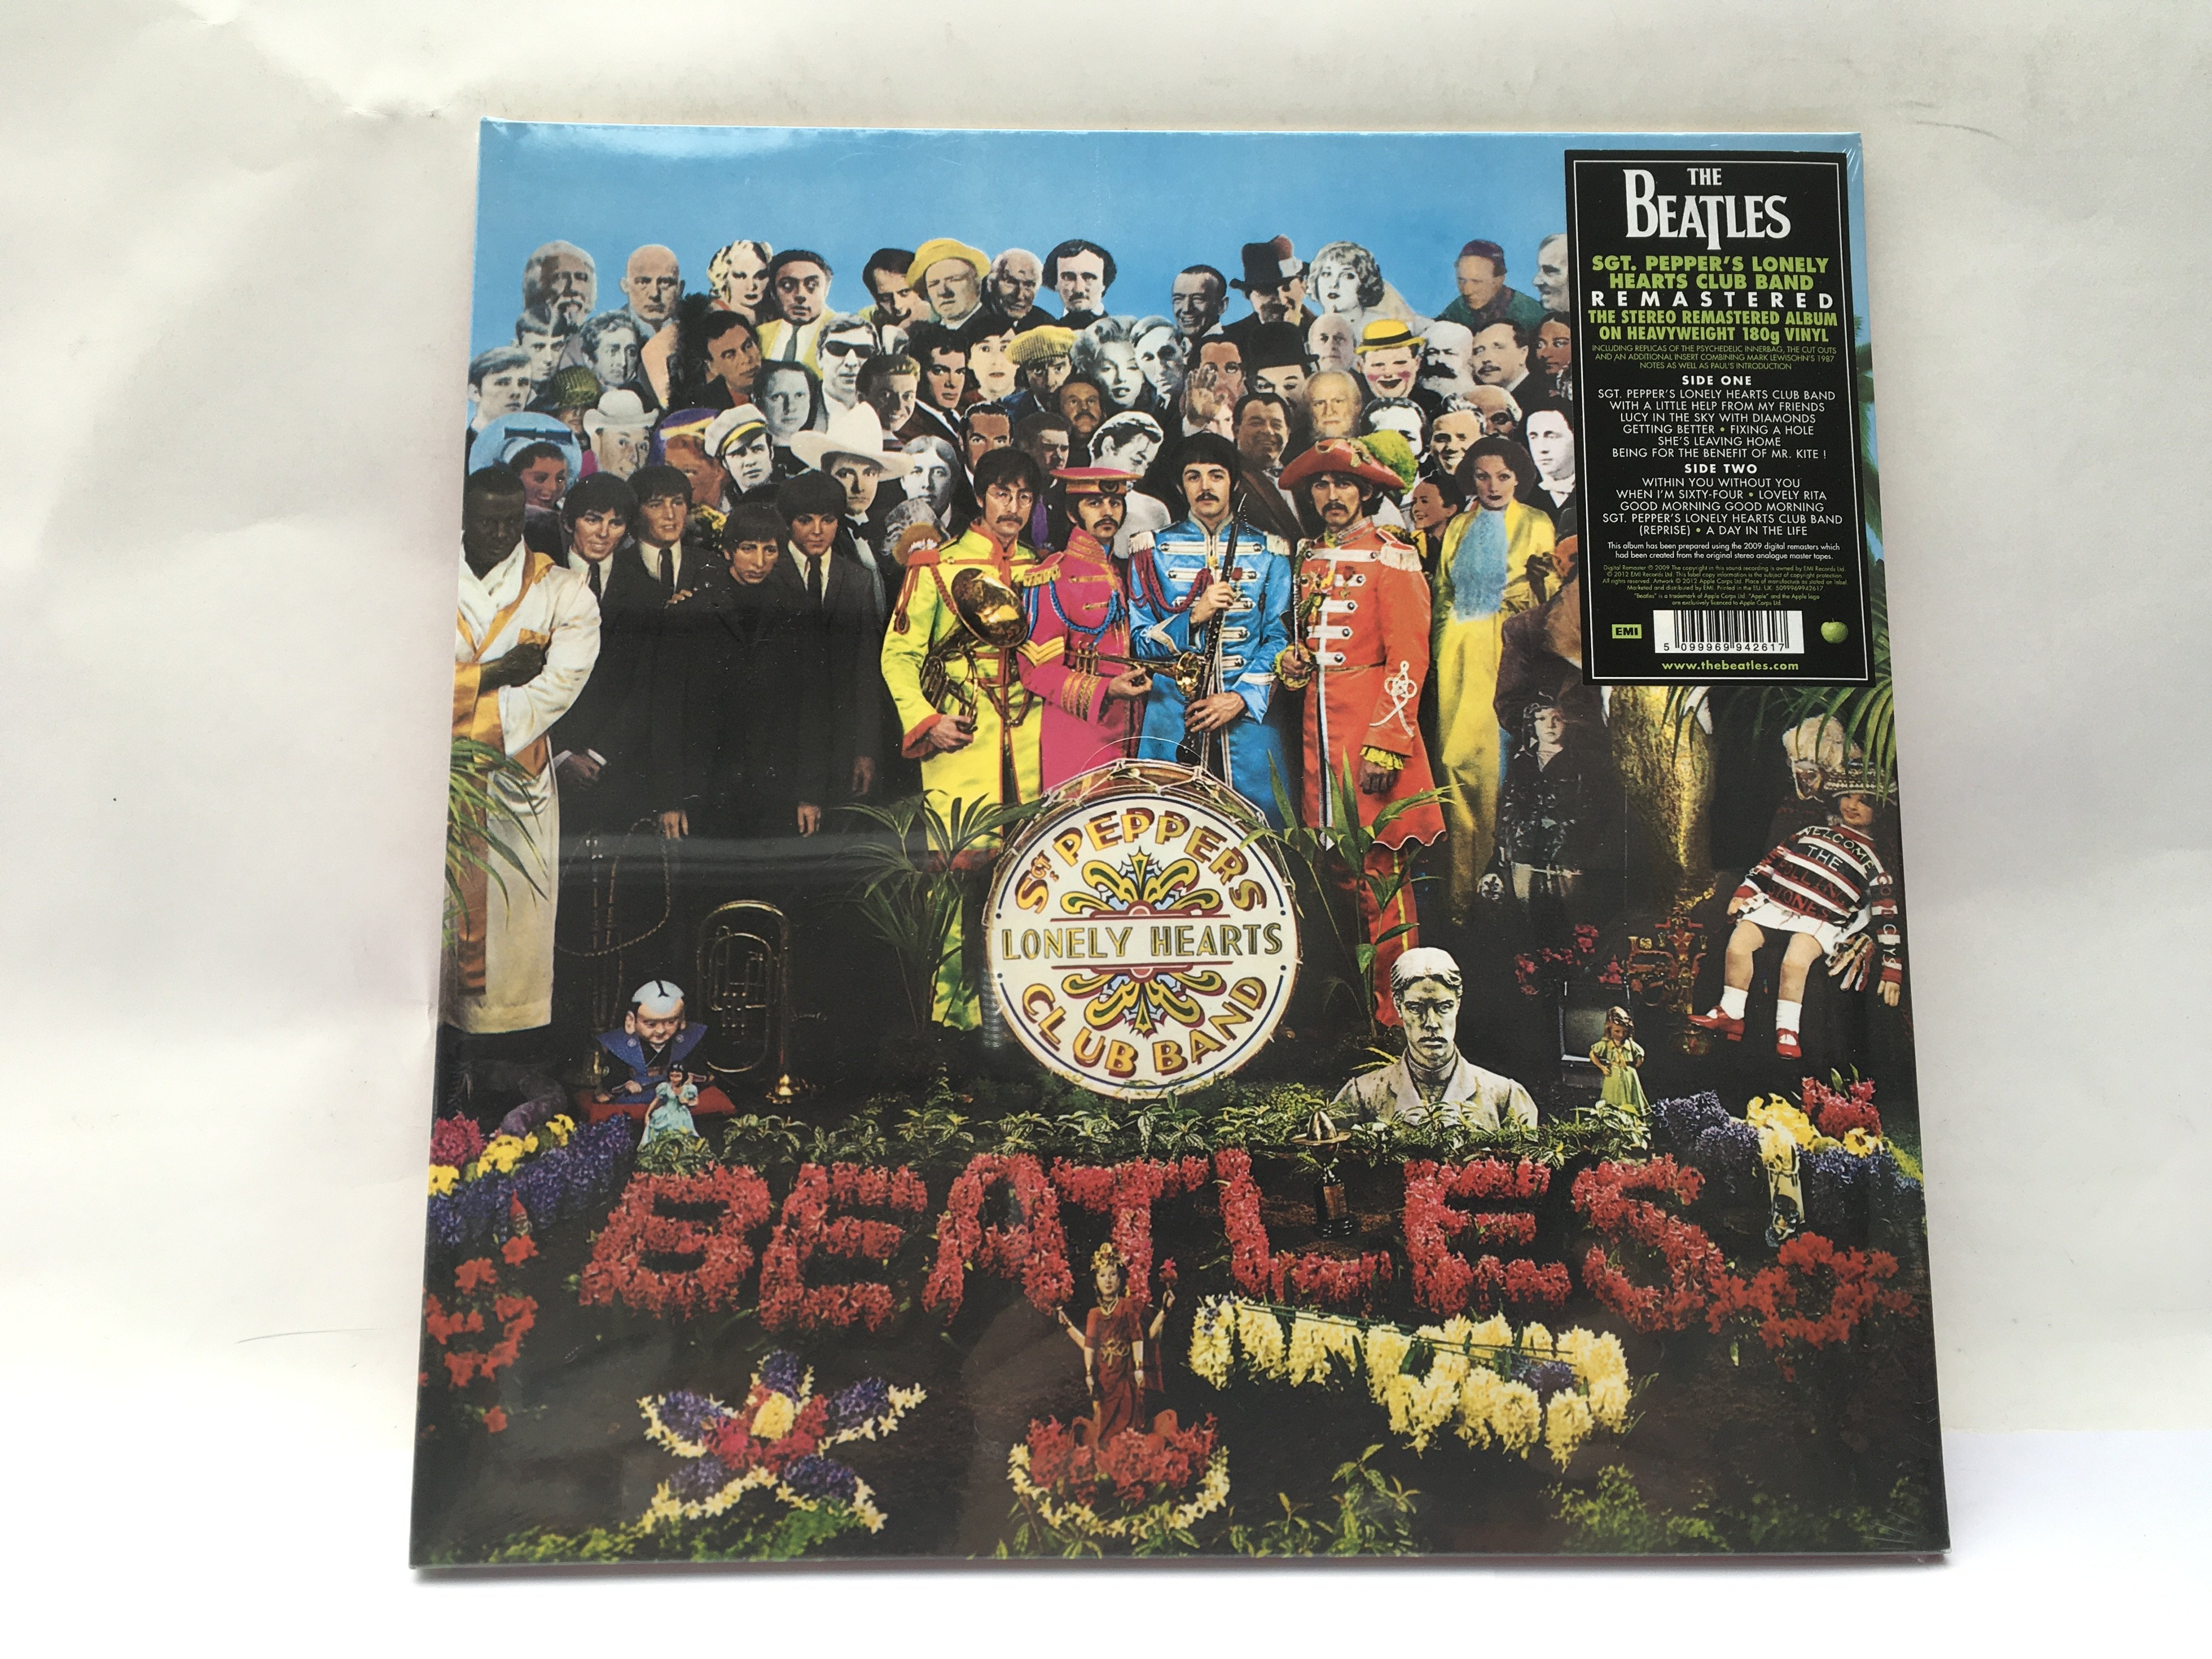 A sealed and mint 180g 2009 pressing of 'Sgt Peppe